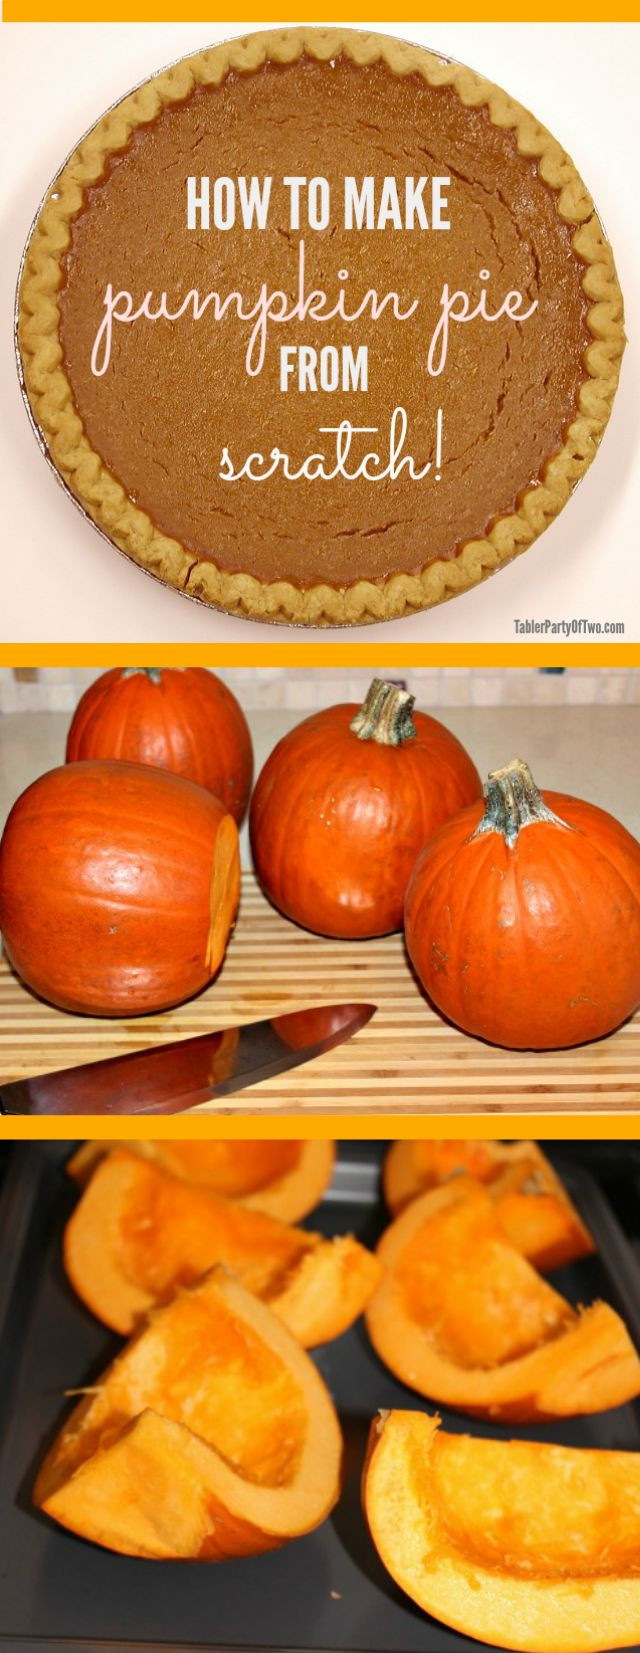 Pumpkin Pie Filling From Scratch  best Do It Yourself Today images on Pinterest